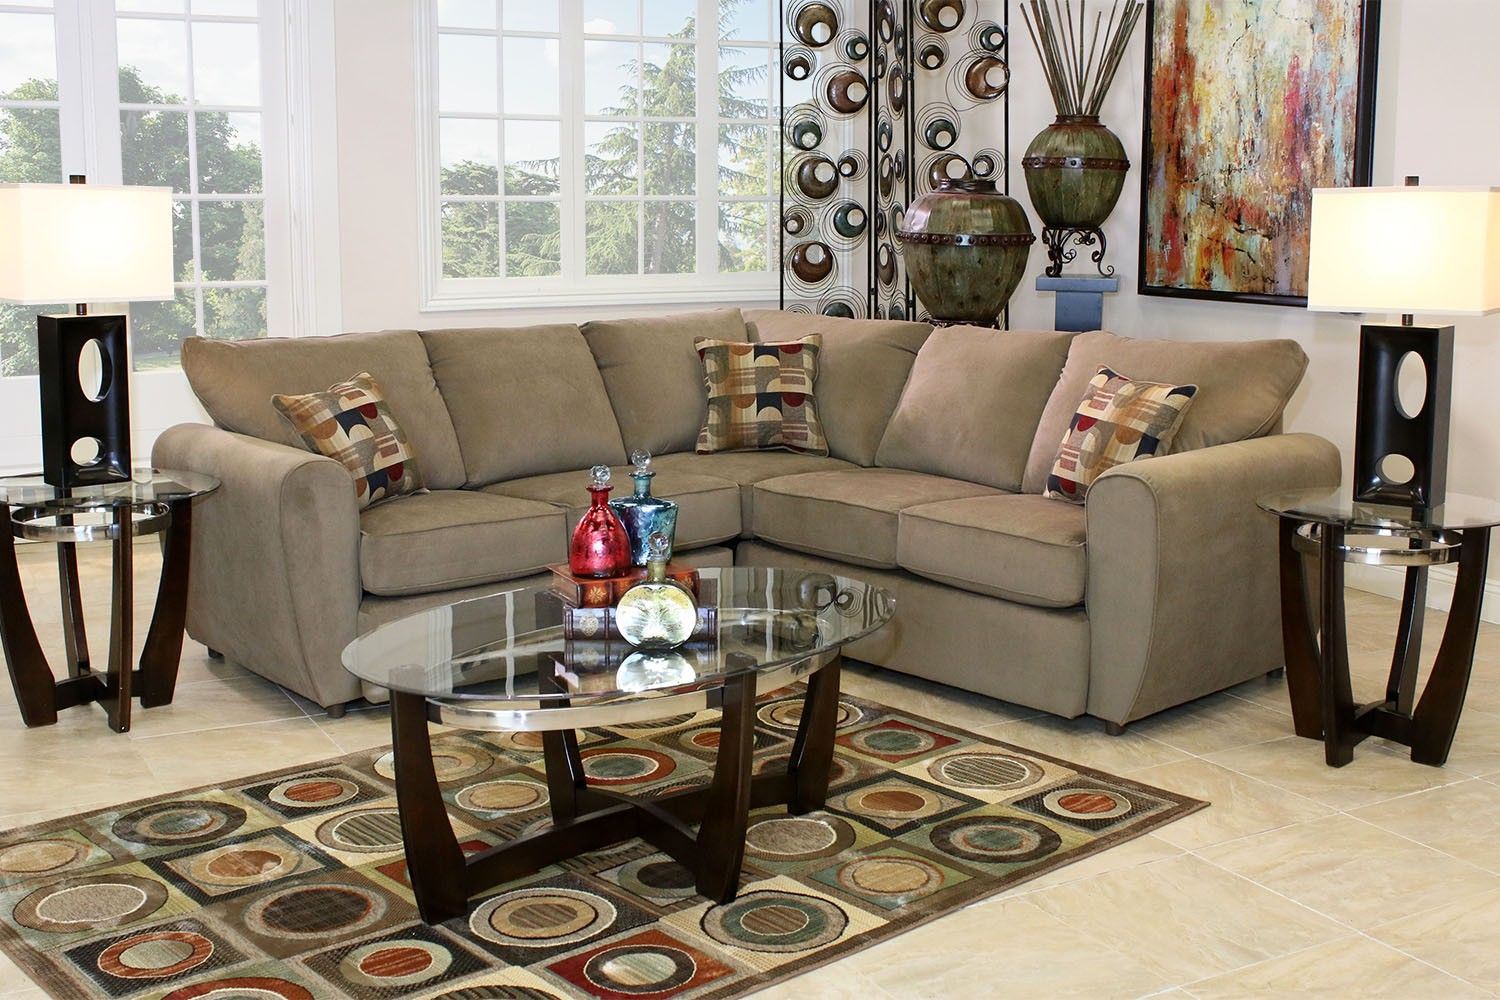 top hat sectional living room in cafe living room mor furniture for less